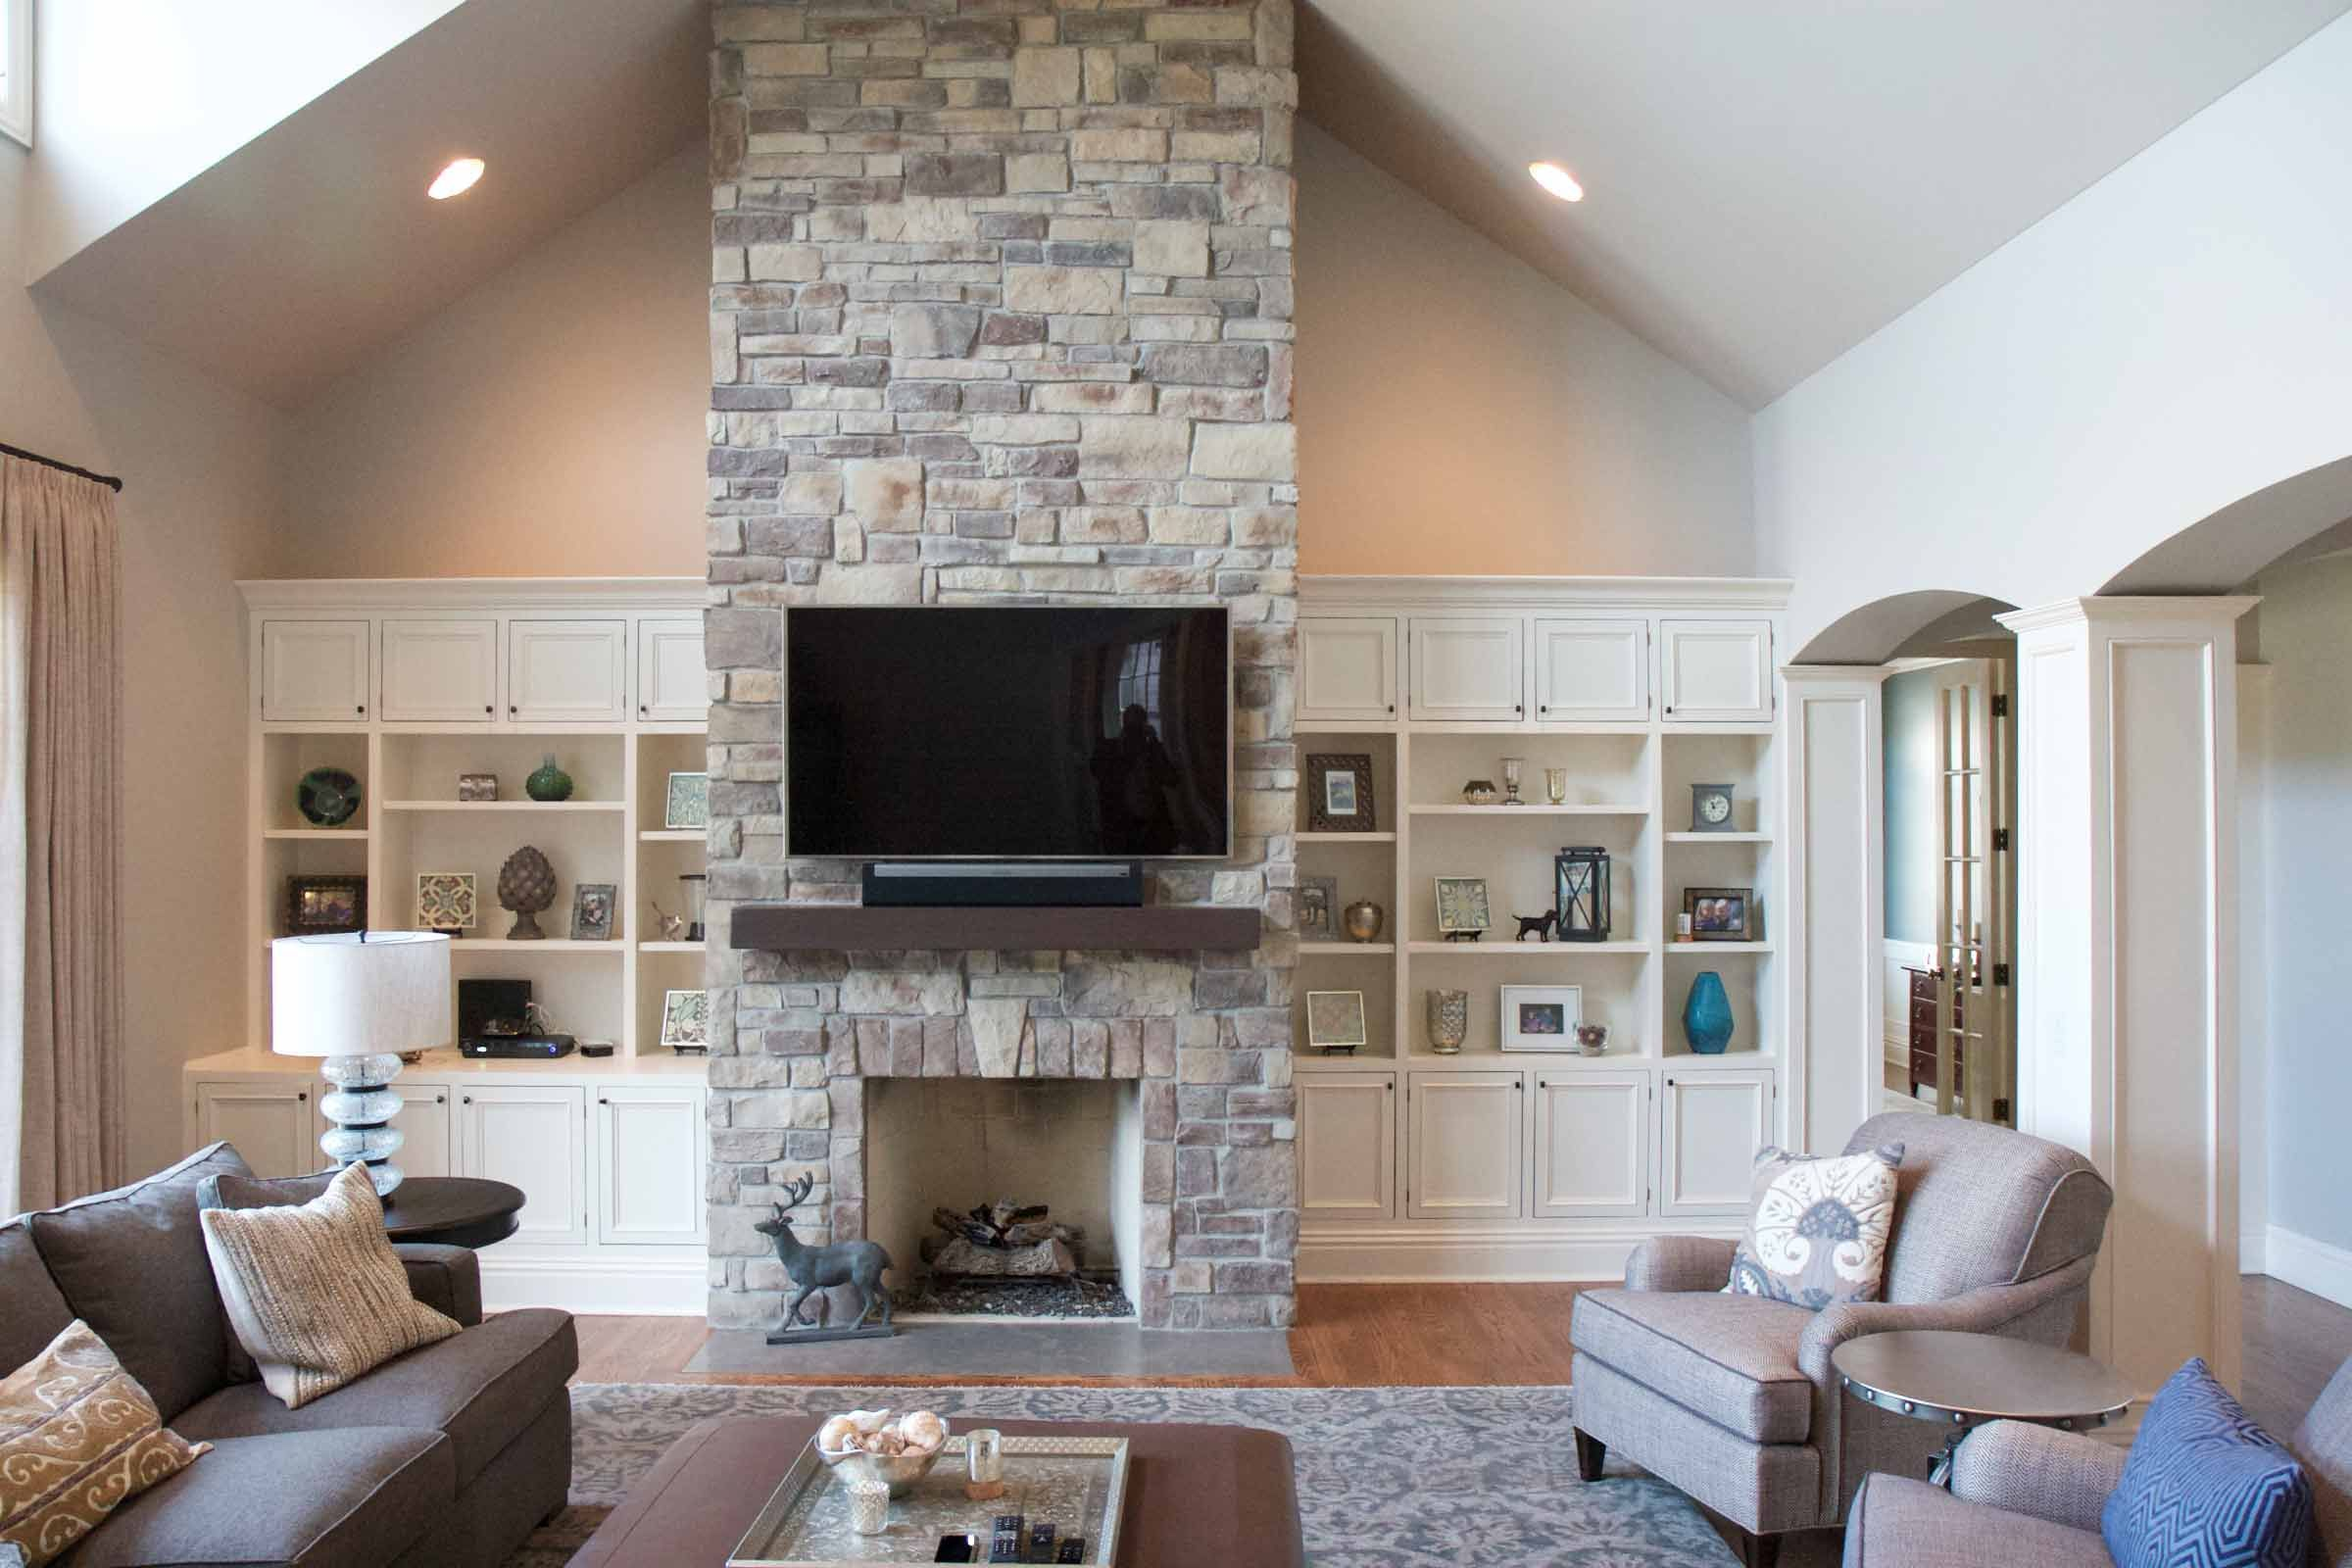 48+ High ceiling fireplace ideas ideas in 2021